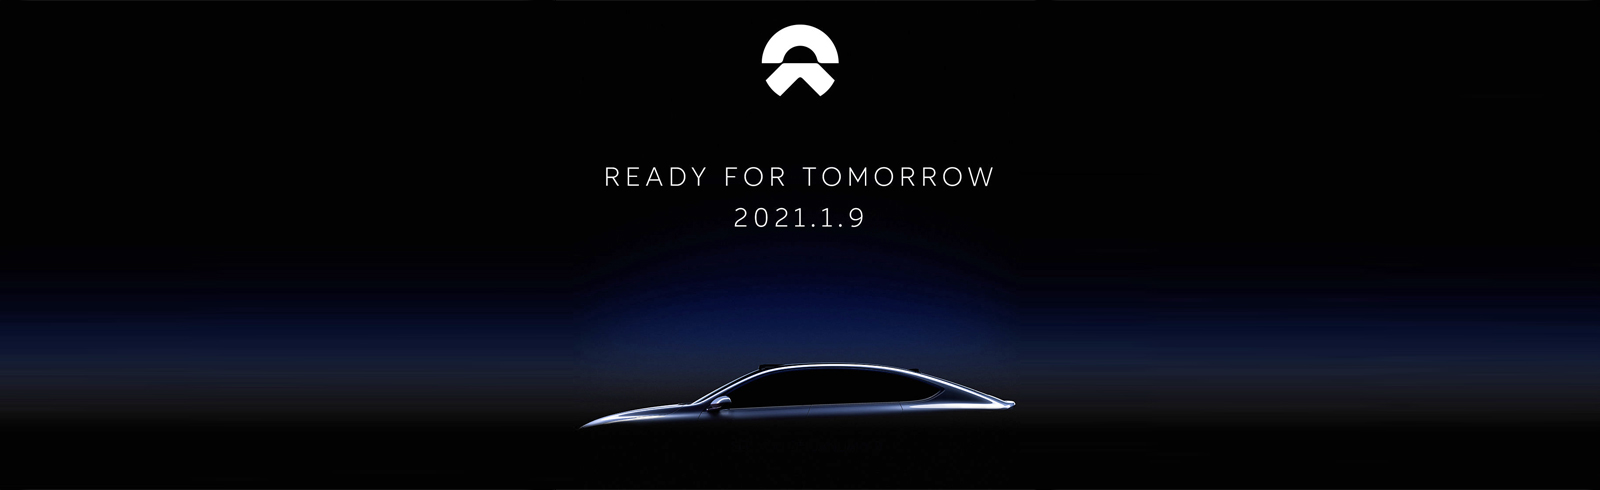 NIO delivers 43,728 vehicles in 2020; teases an upcoming EV to be presented on January 9